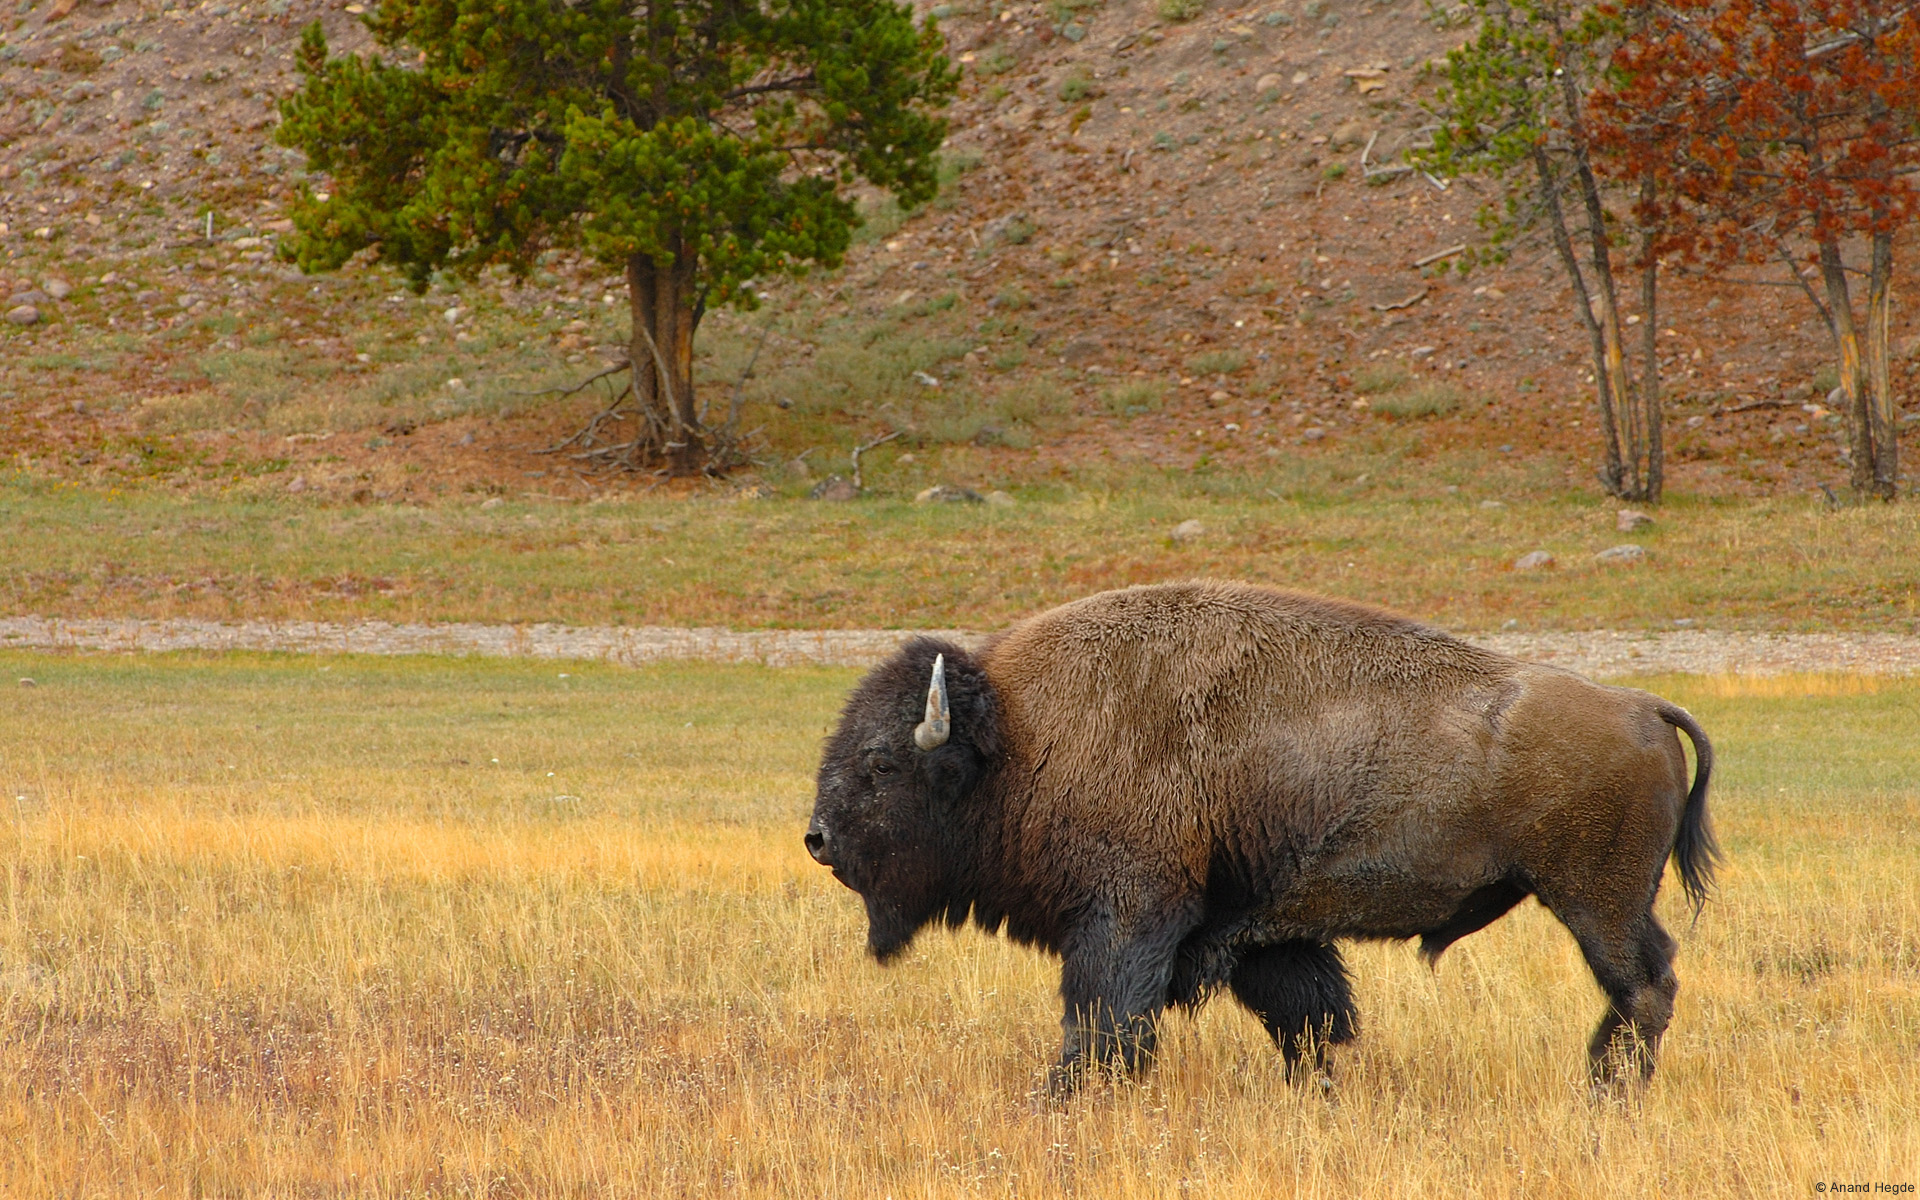 Bison in Yellowstone National Park, United States